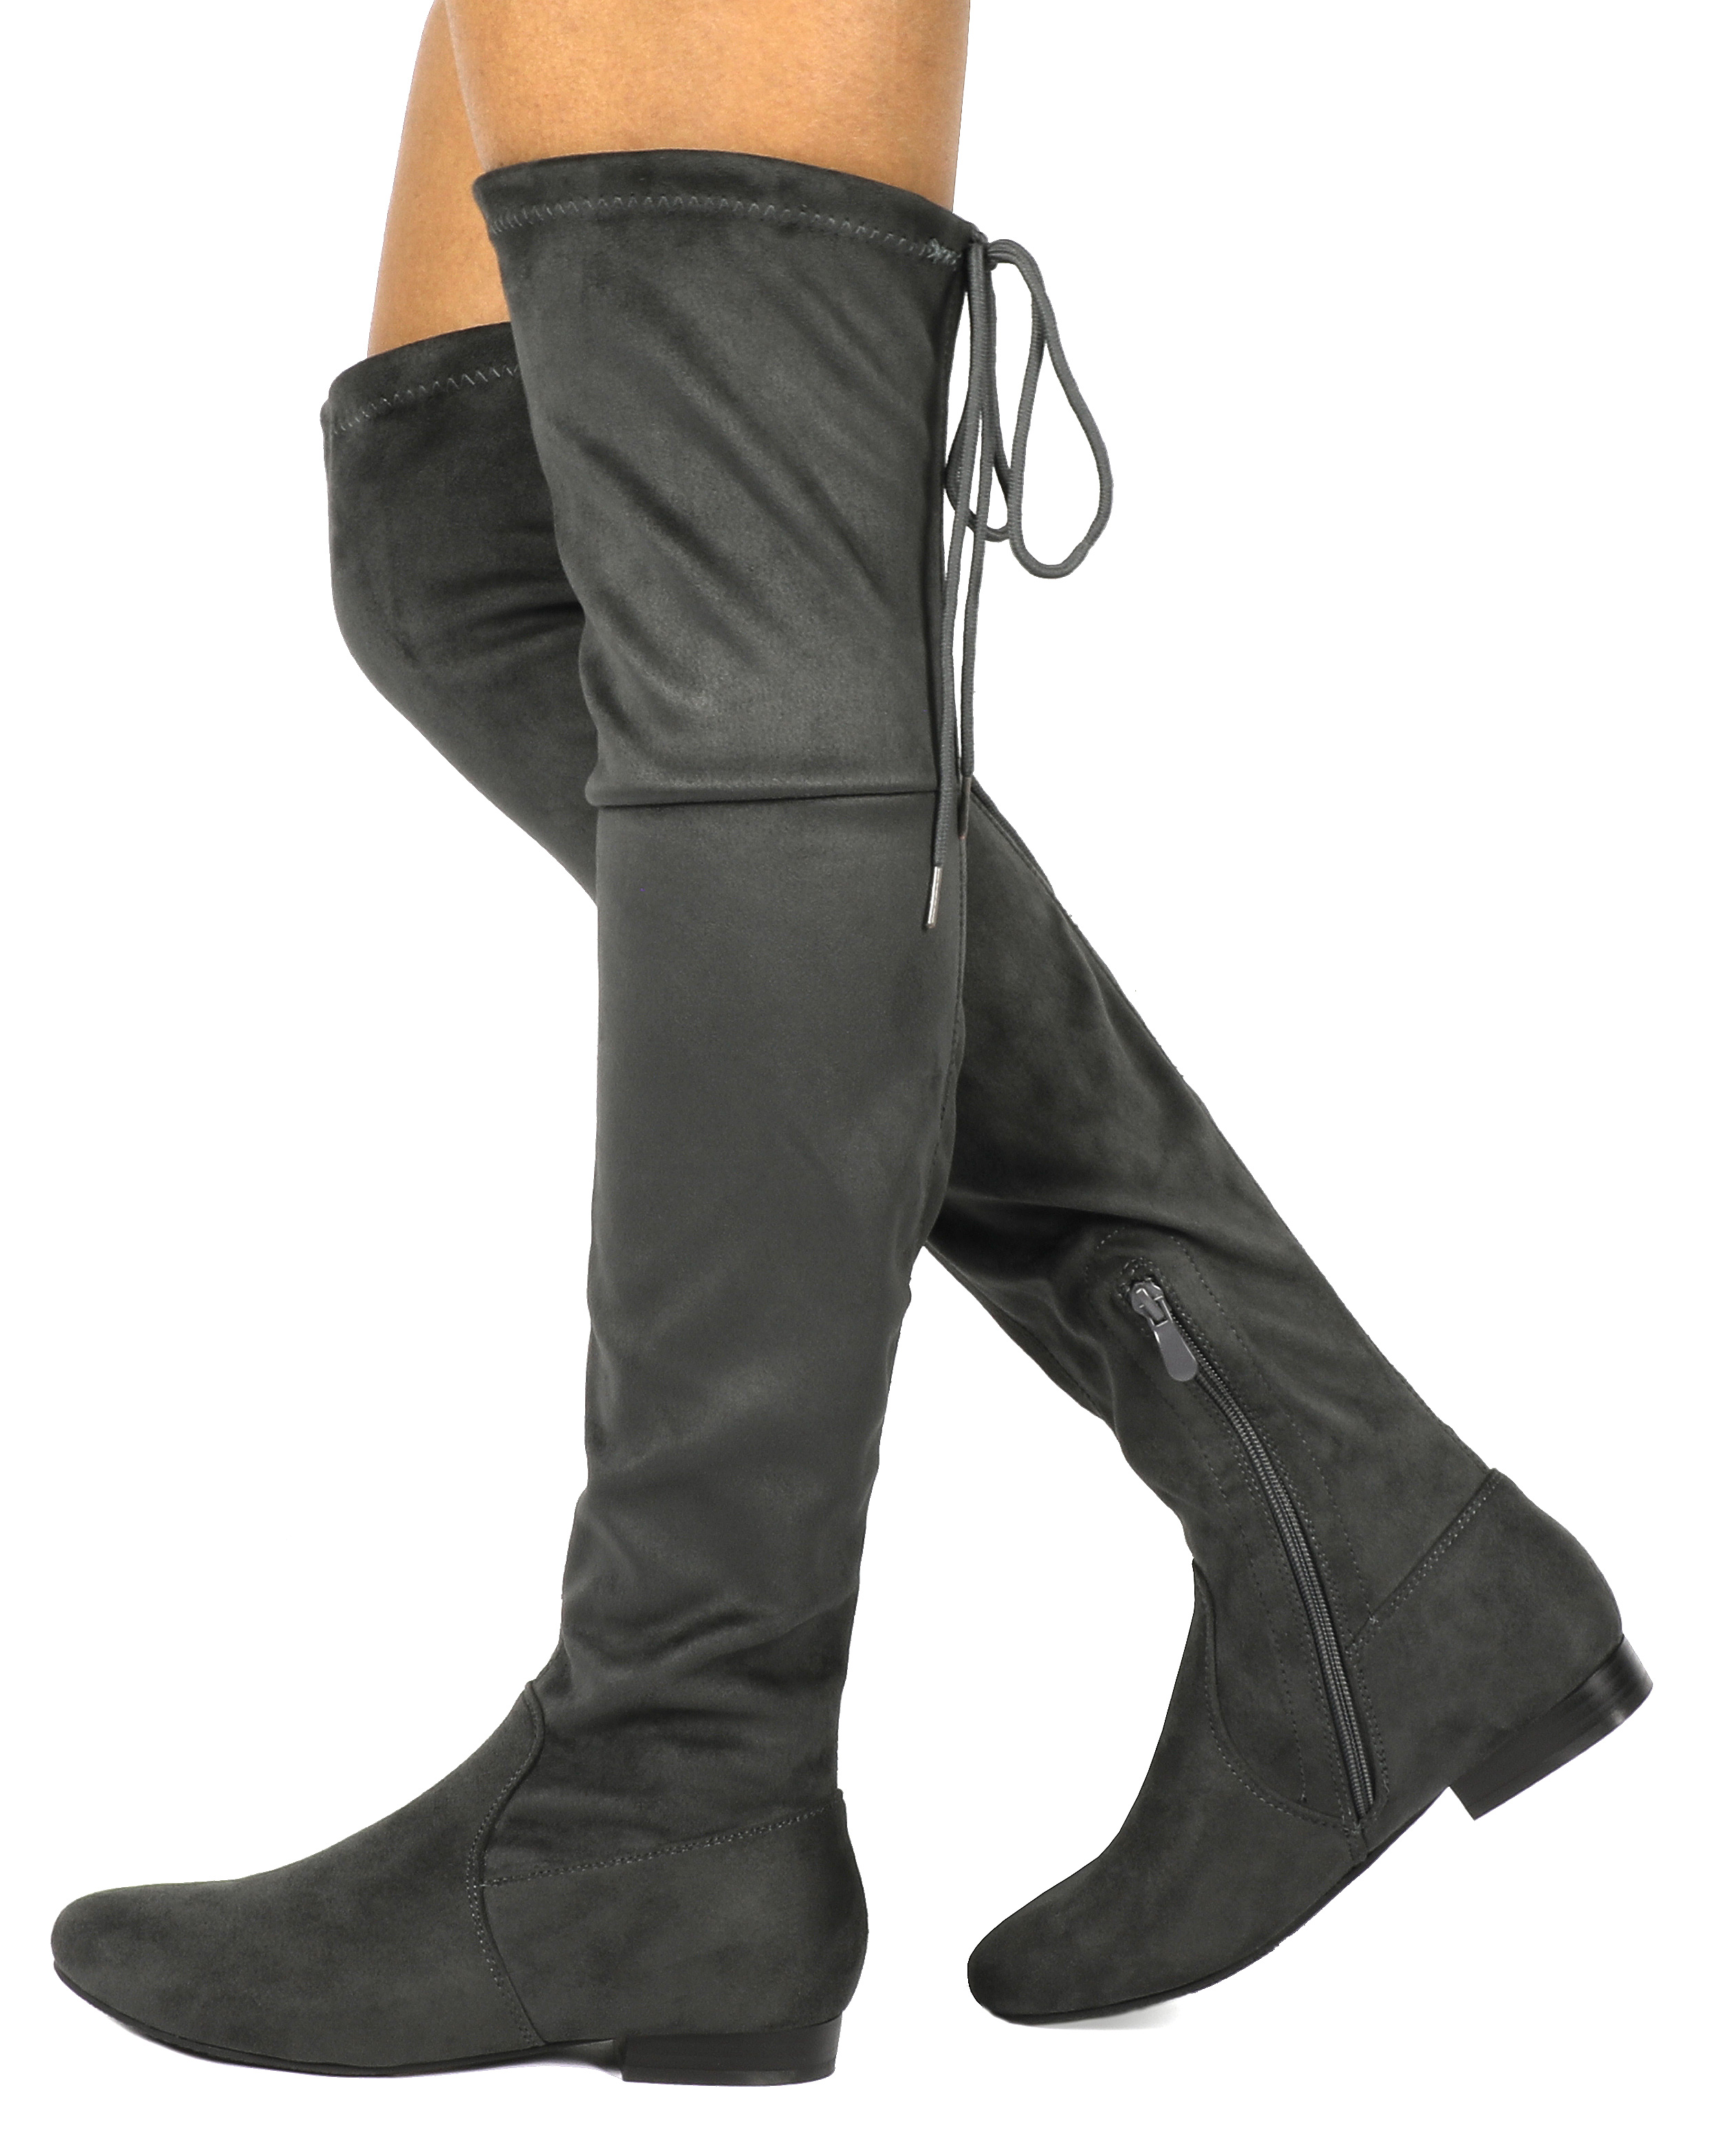 Women-Thigh-High-Flat-Boots-Stretchy-Drawstring-Tie-Fashion-Over-The-Knee-Boots miniatuur 3